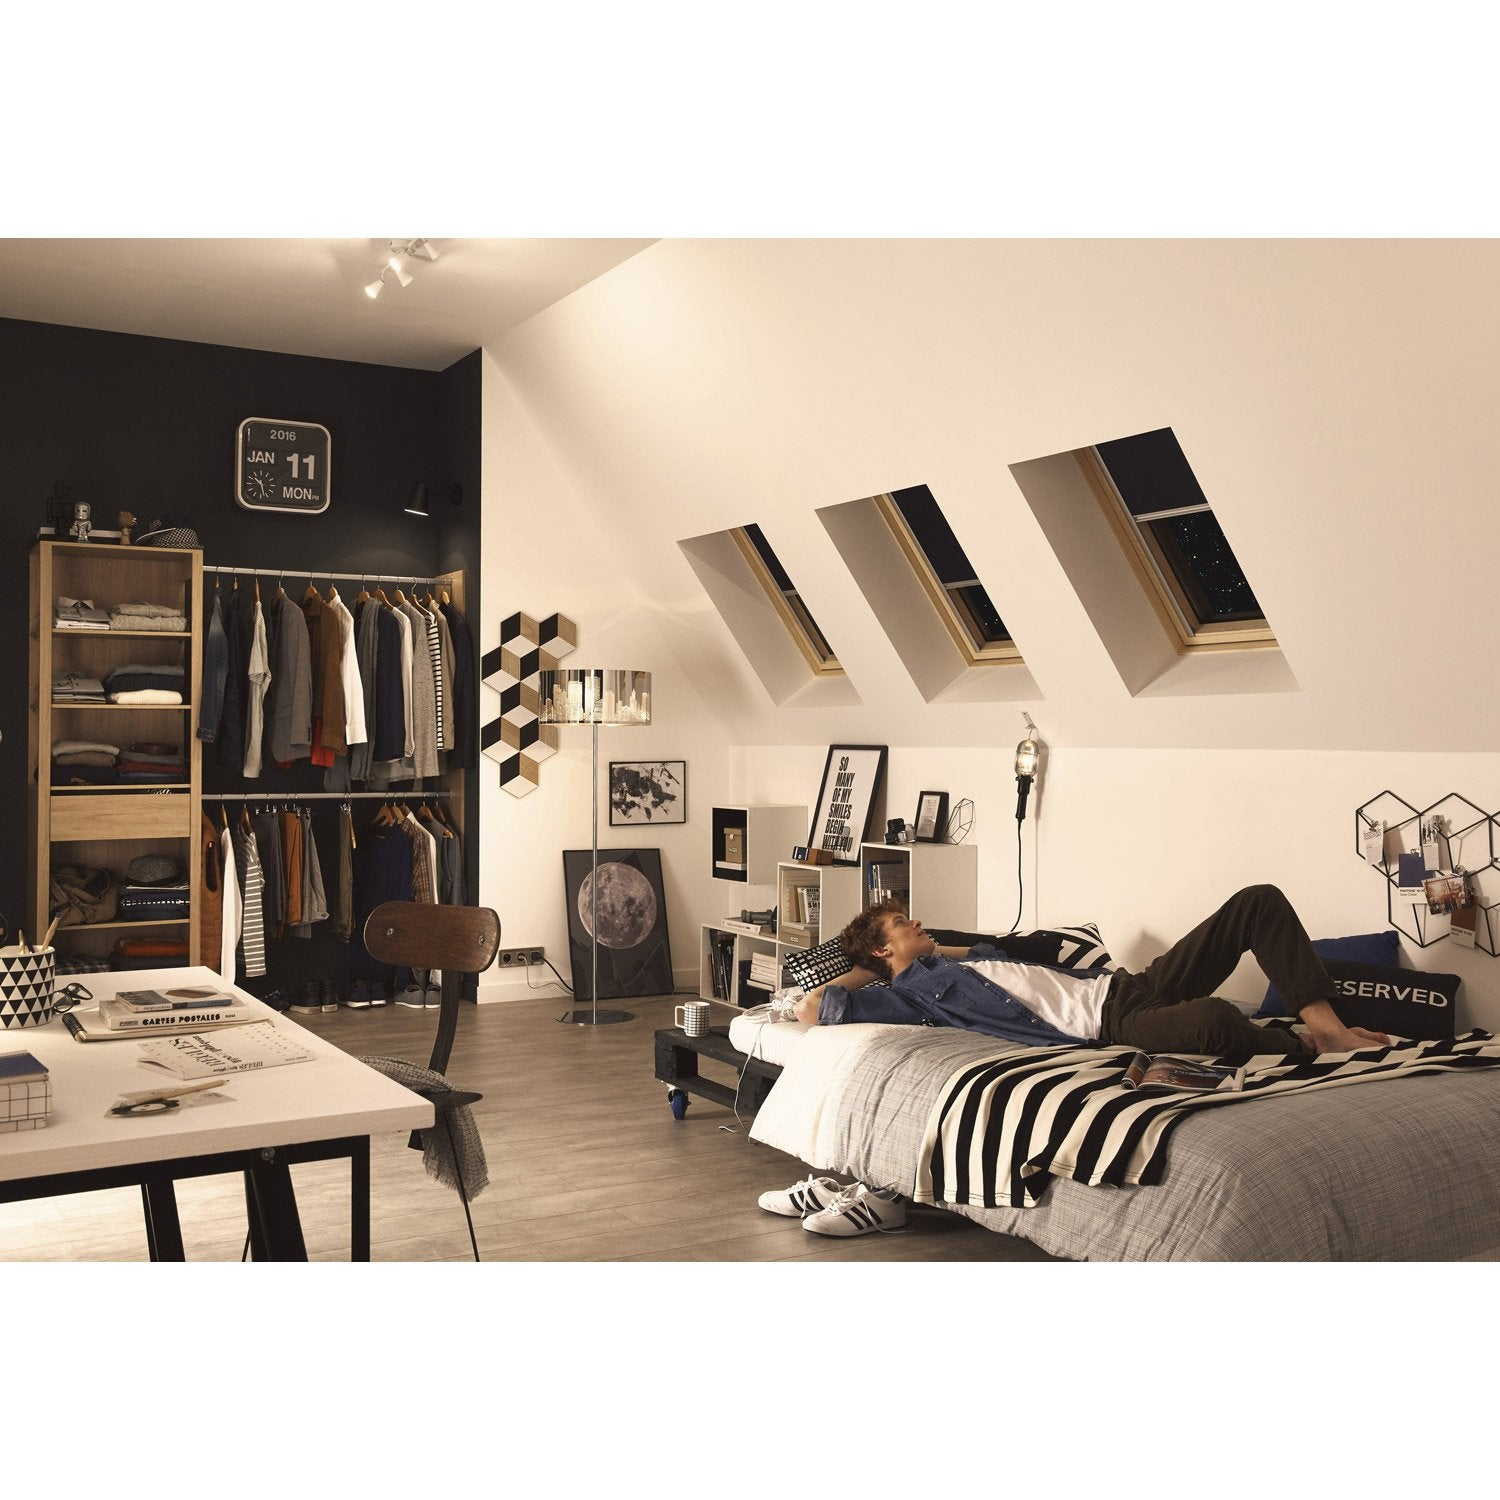 store velux 114x118 pas cher great autres vues with store velux 114x118 pas cher awesome. Black Bedroom Furniture Sets. Home Design Ideas